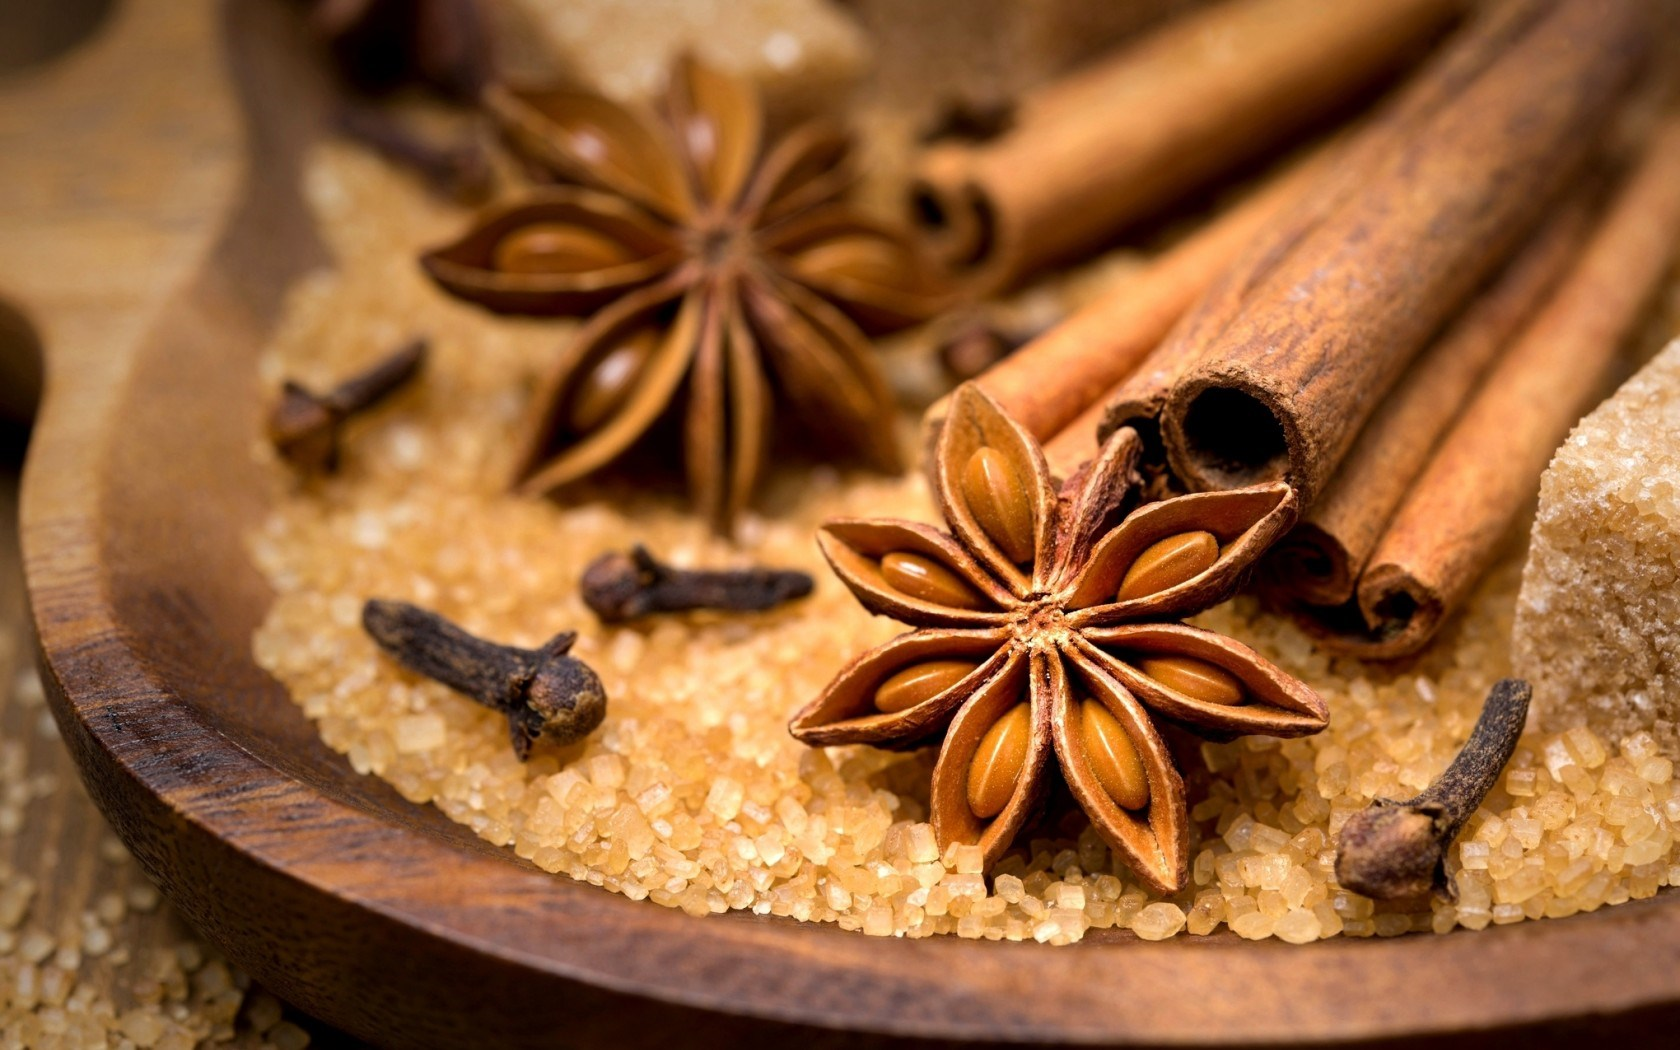 Stars Anise Cloves Stick Cinnamon Sugar Spices Herbs HD Wallpaper is a awesome hd photography. Free to upload, share the high definition photos.